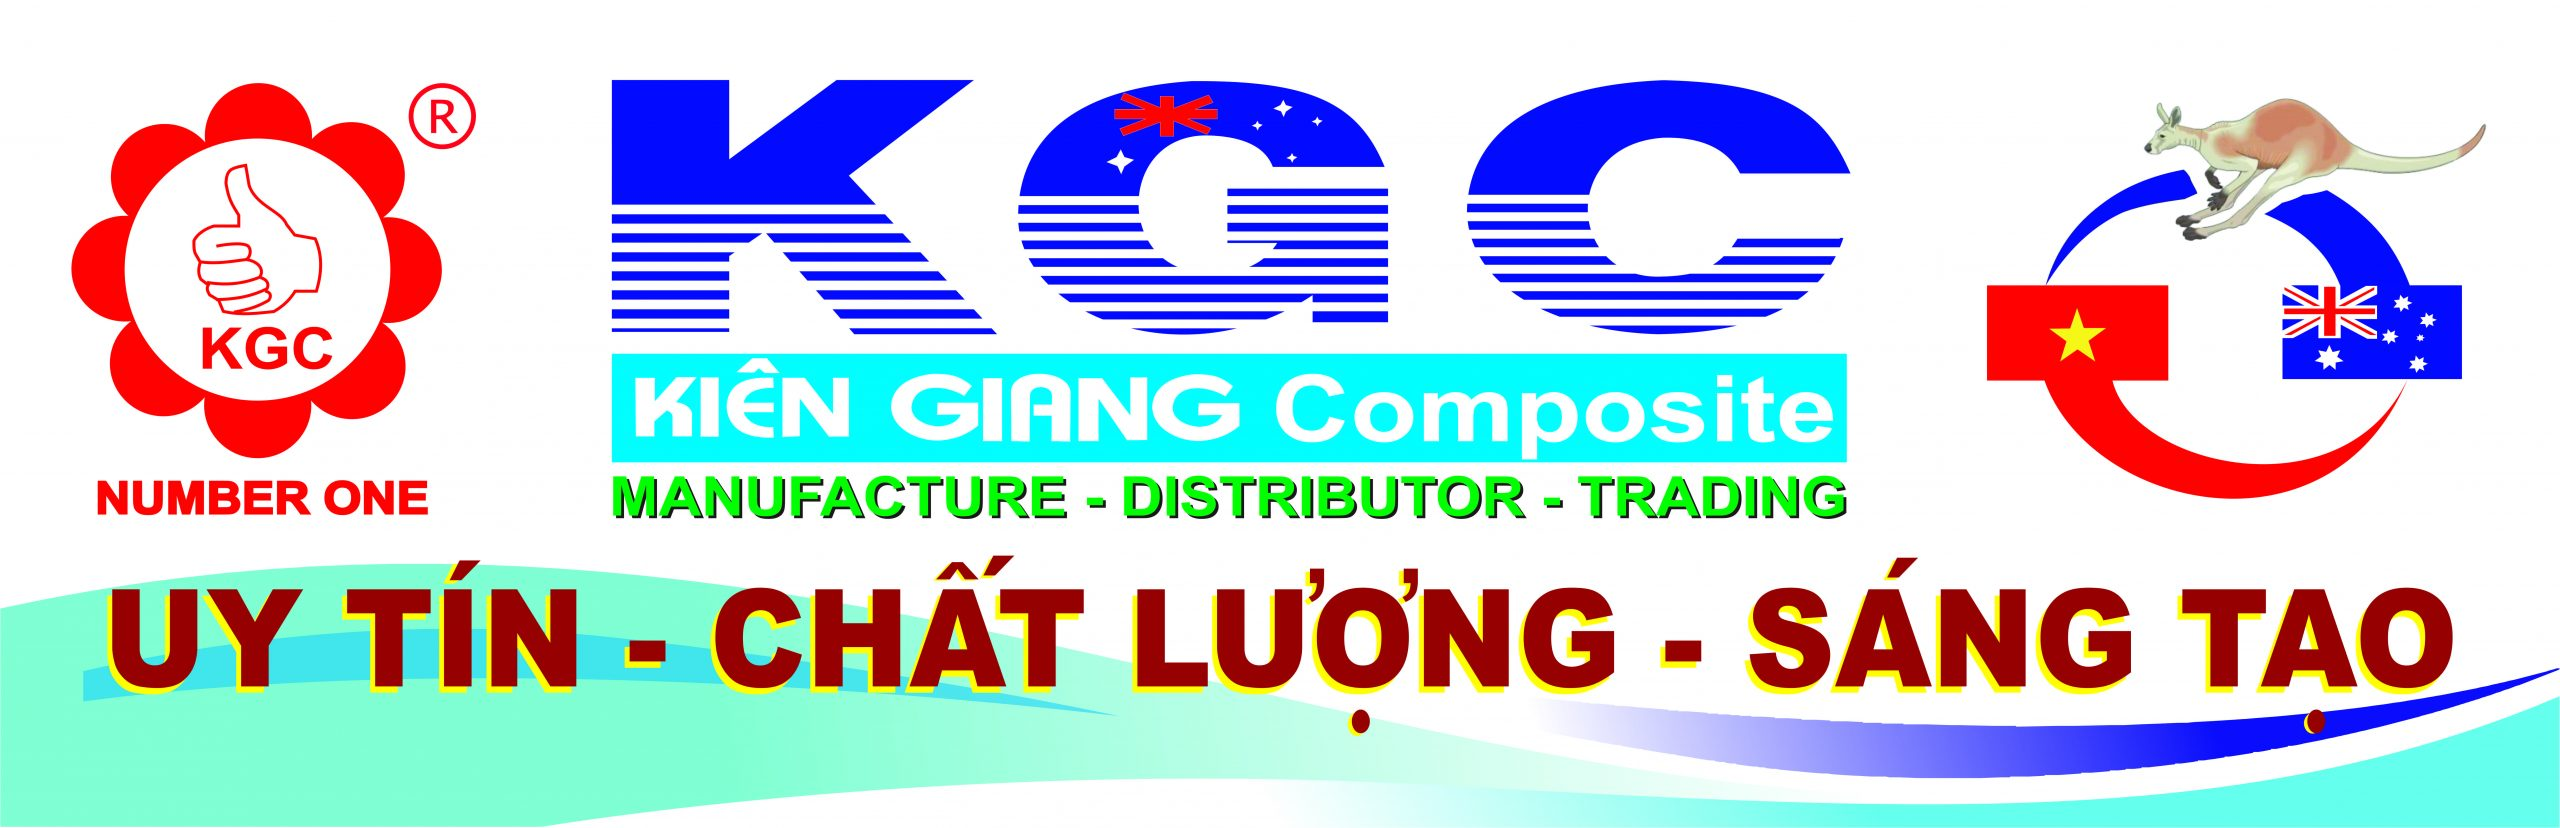 Website Kgc